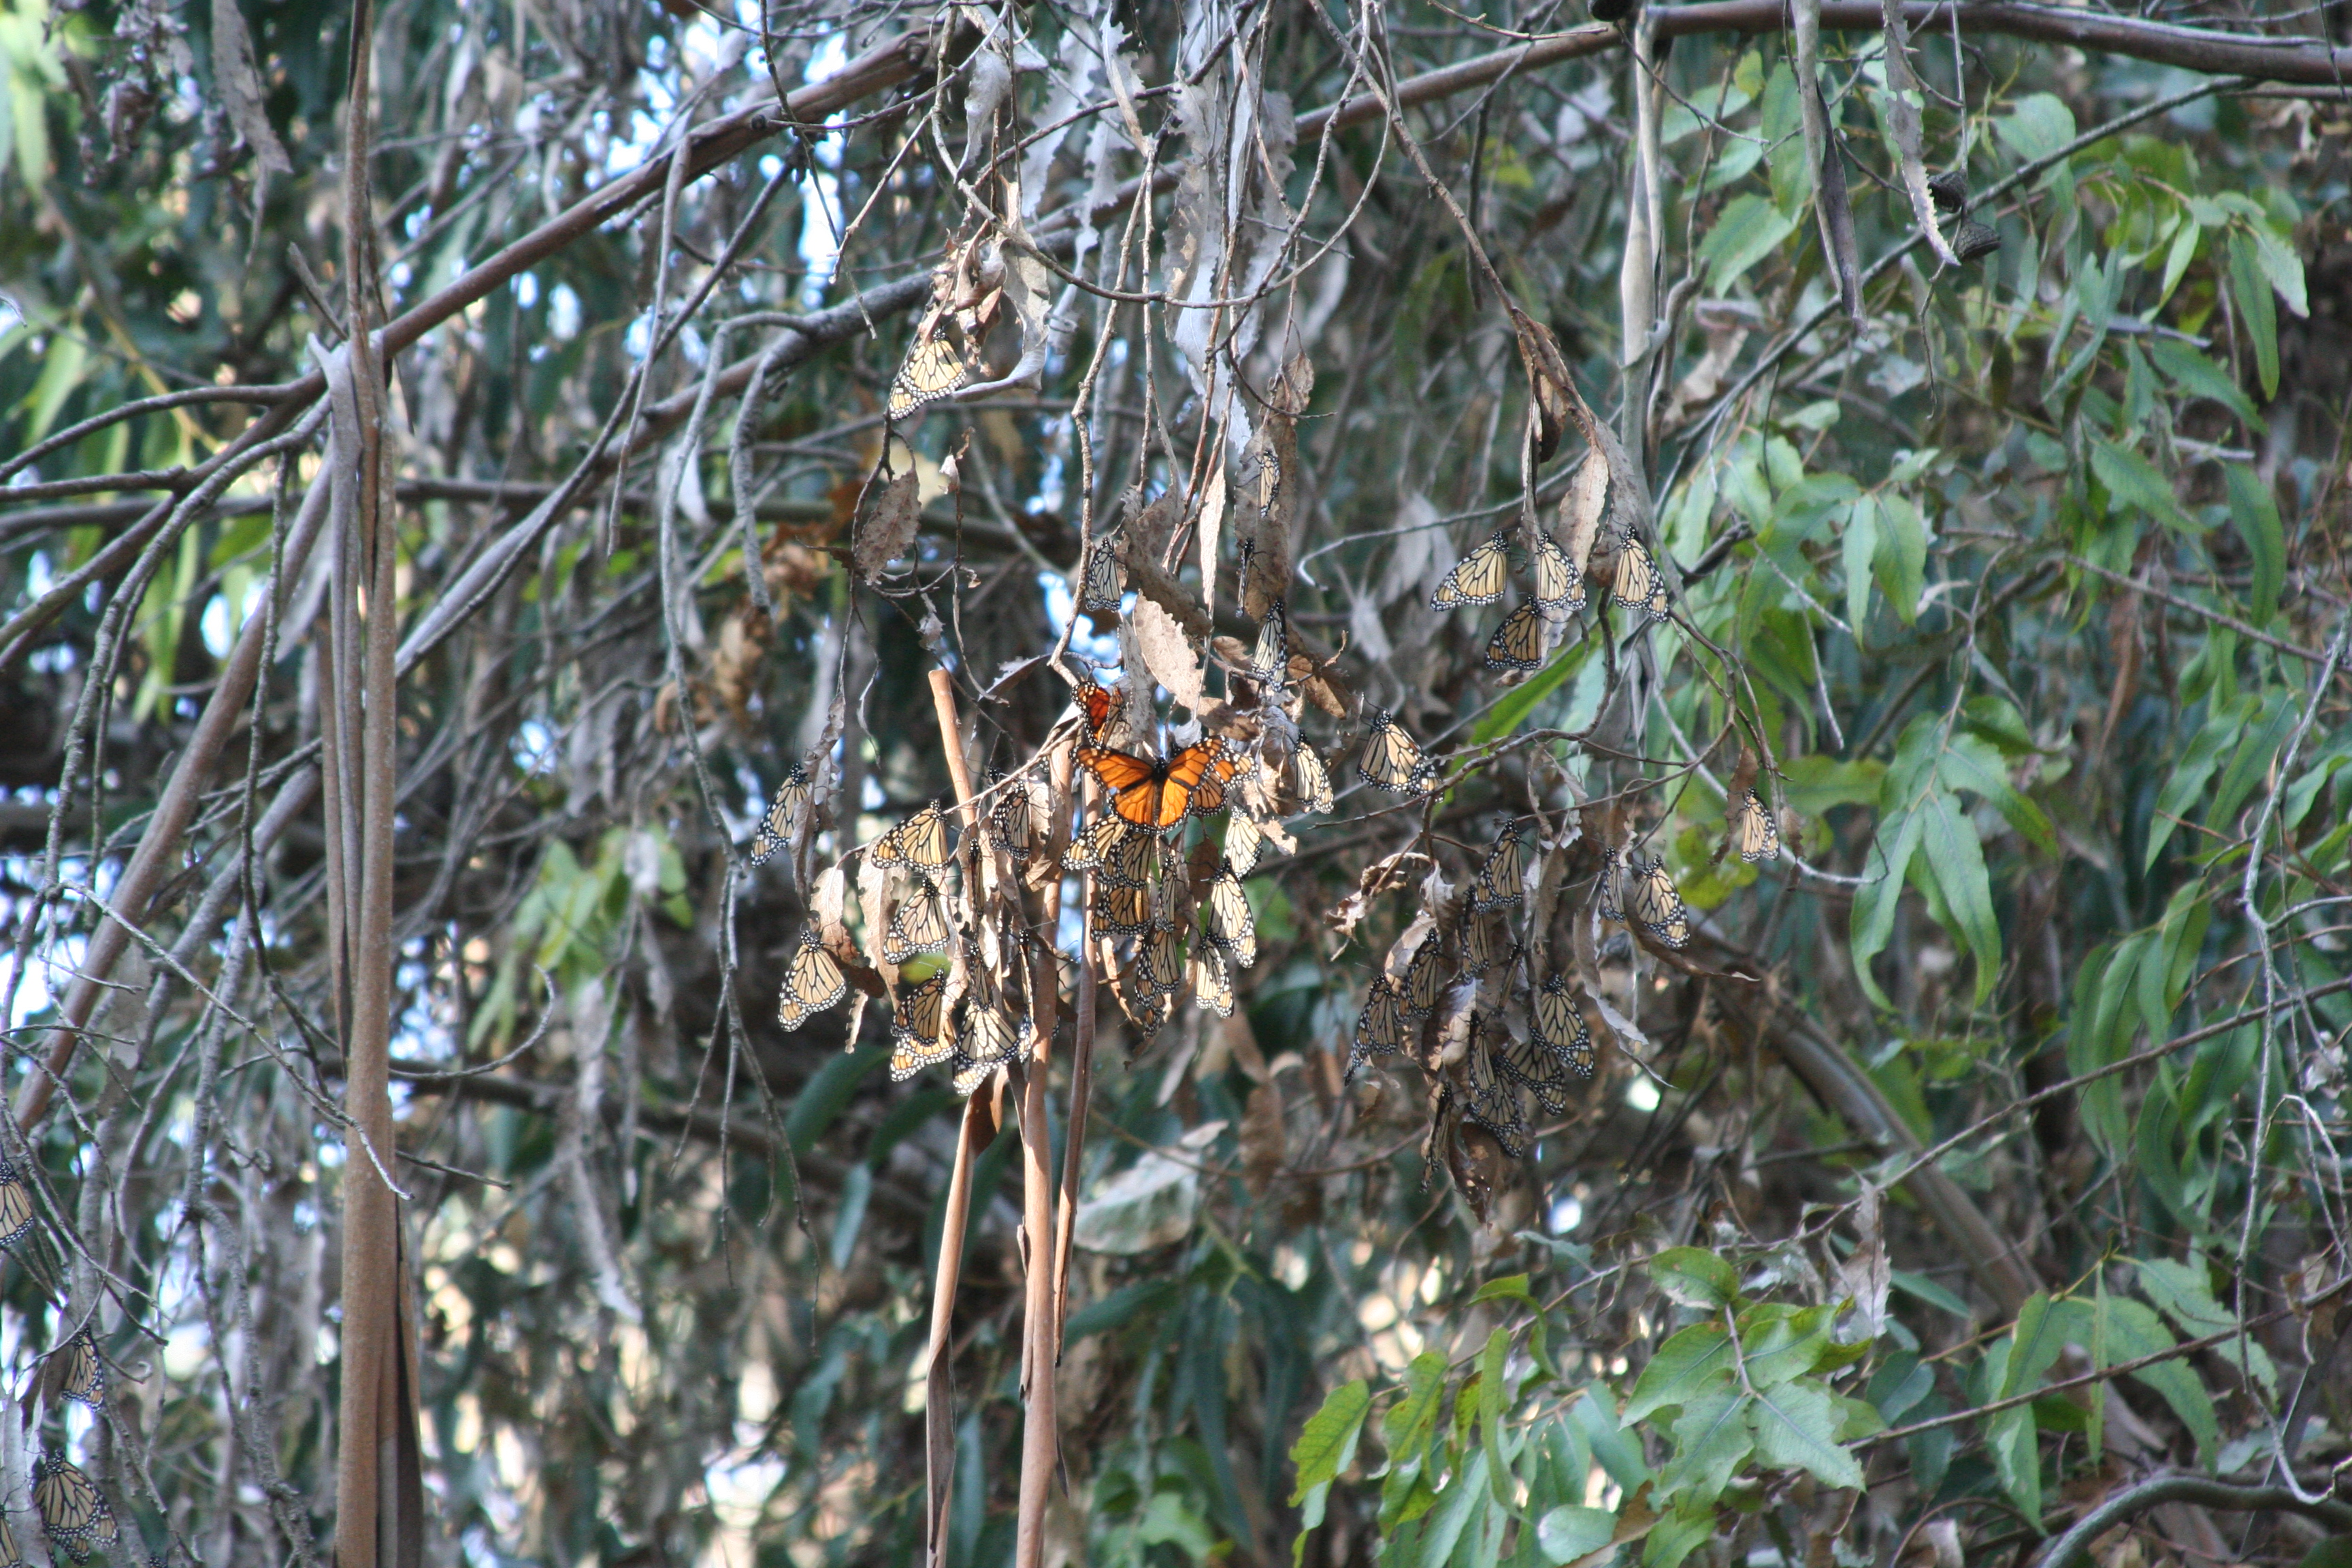 A small group of monarchs--most with their wings closed, making them look duller in color and more like dead leaves--cluster on a branch.